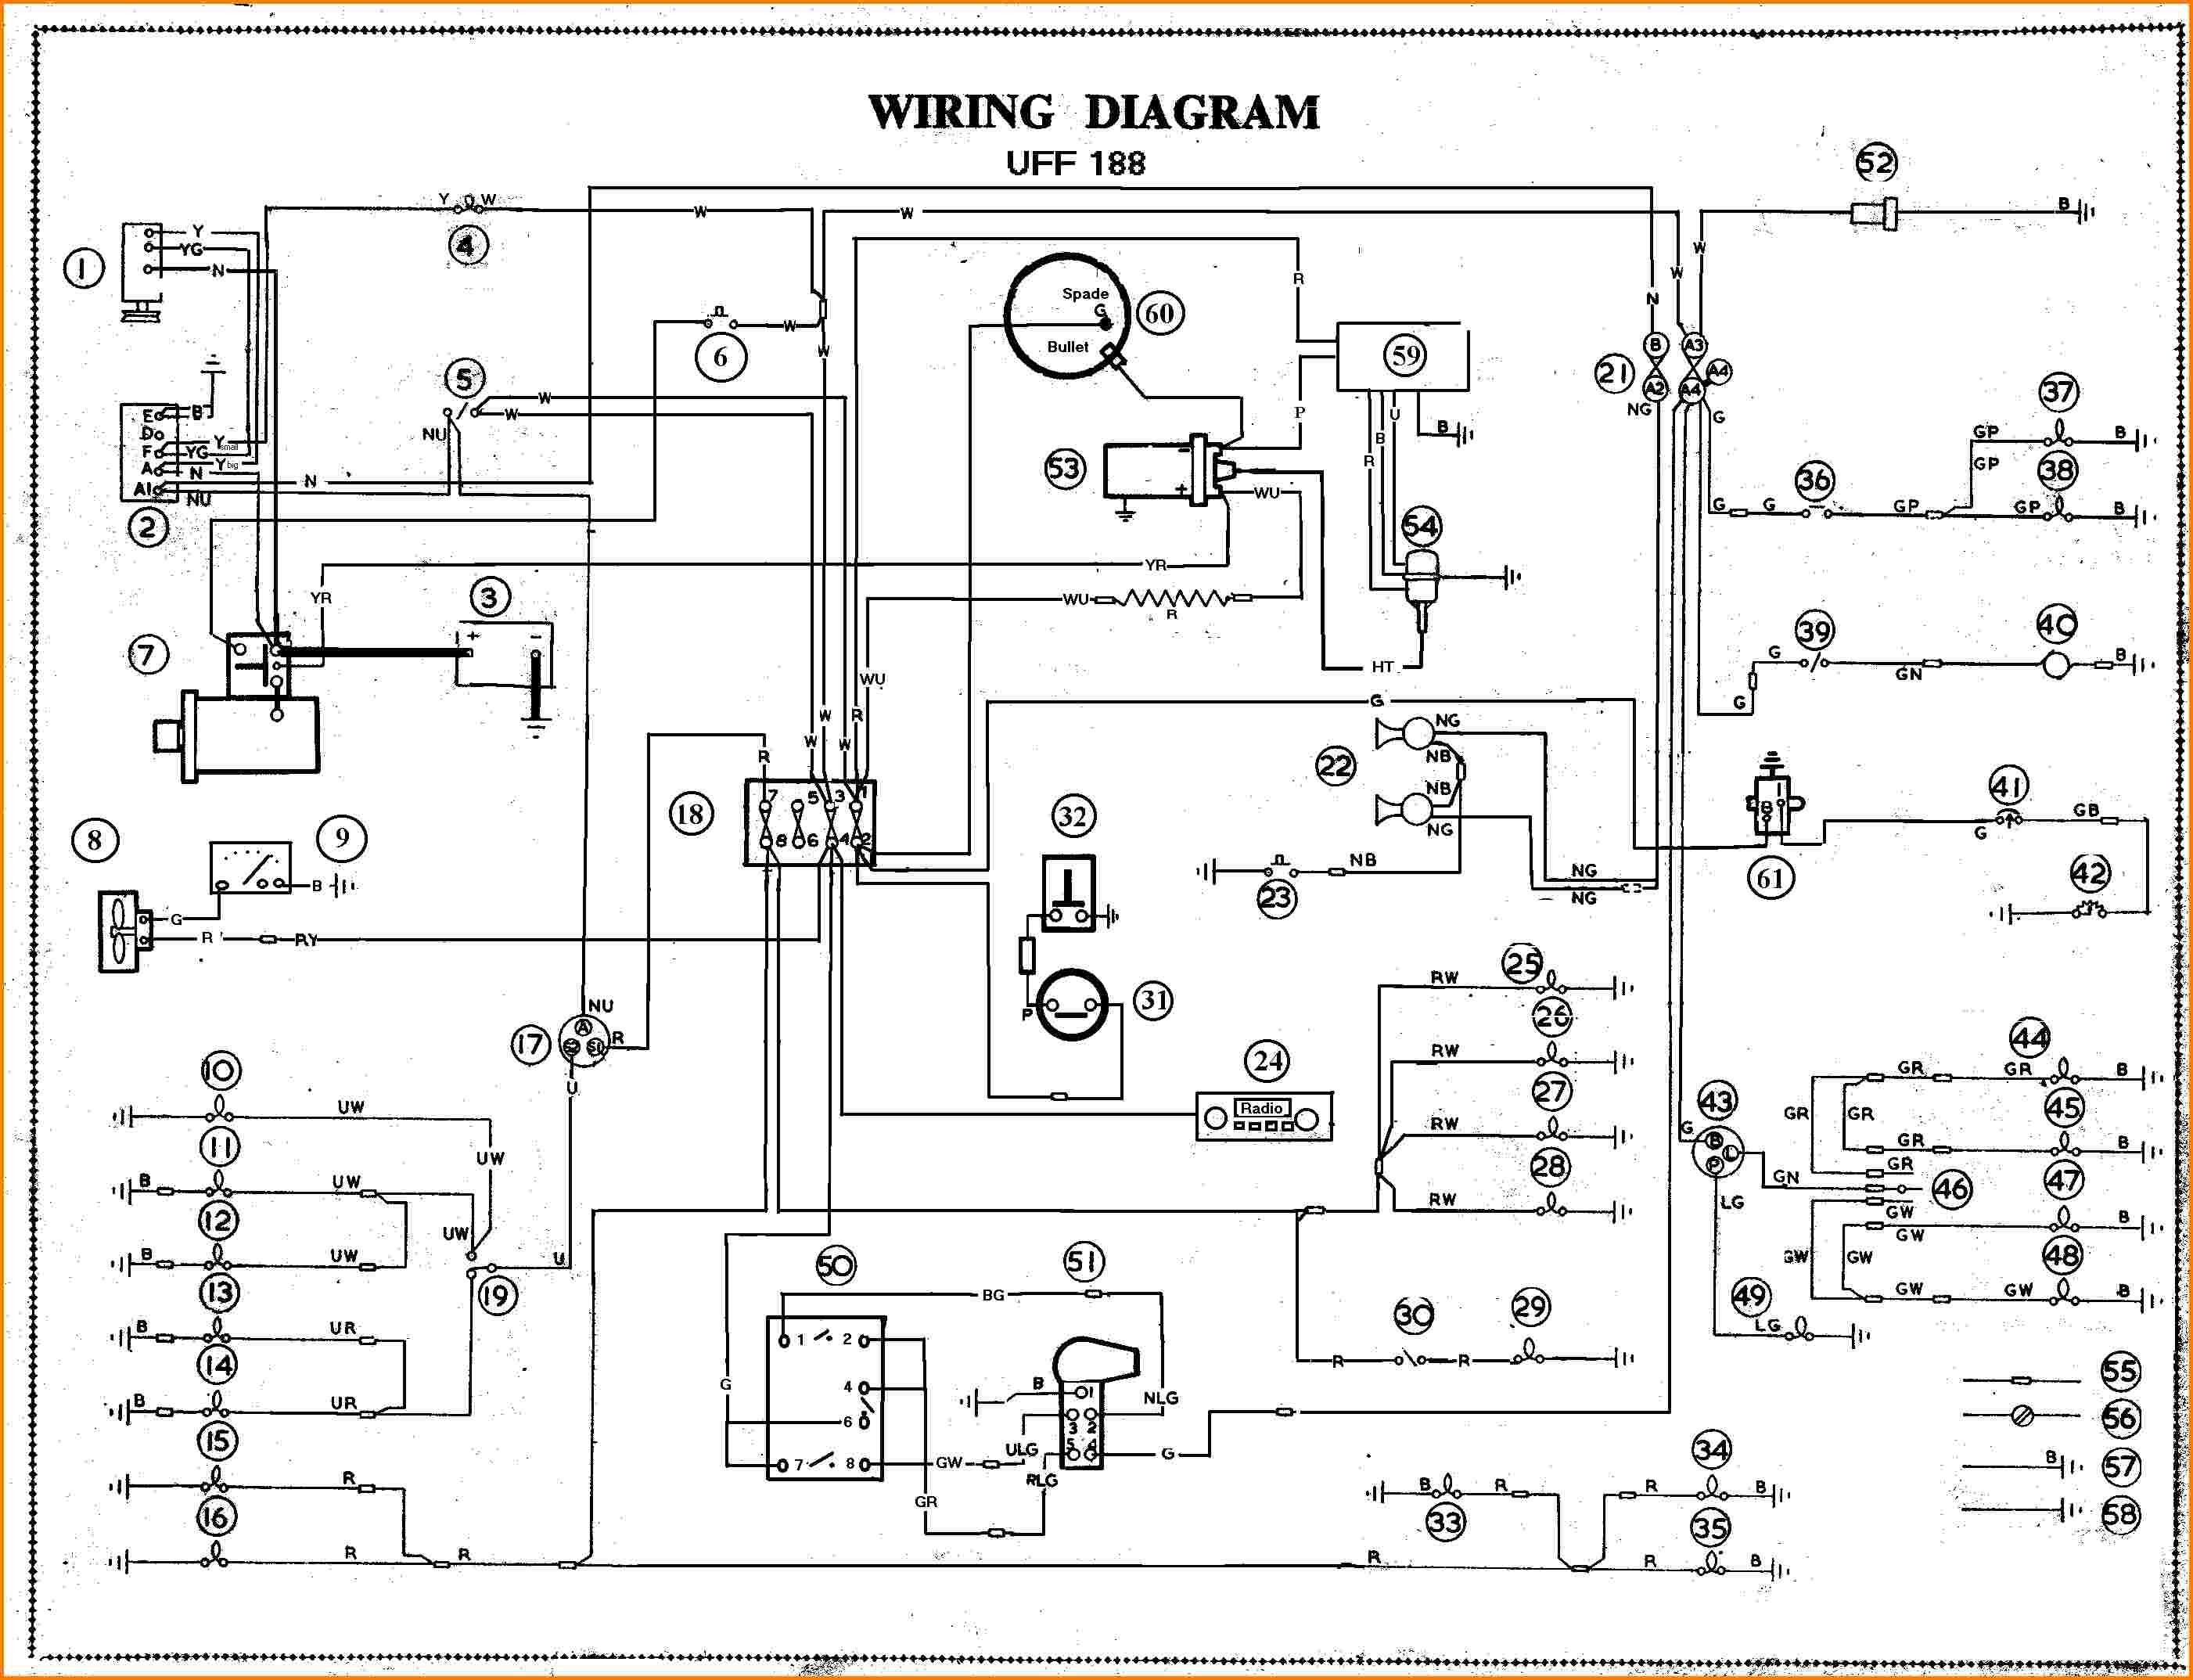 Drag car wiring diagram wire center drag car wiring diagram images gallery asfbconference2016